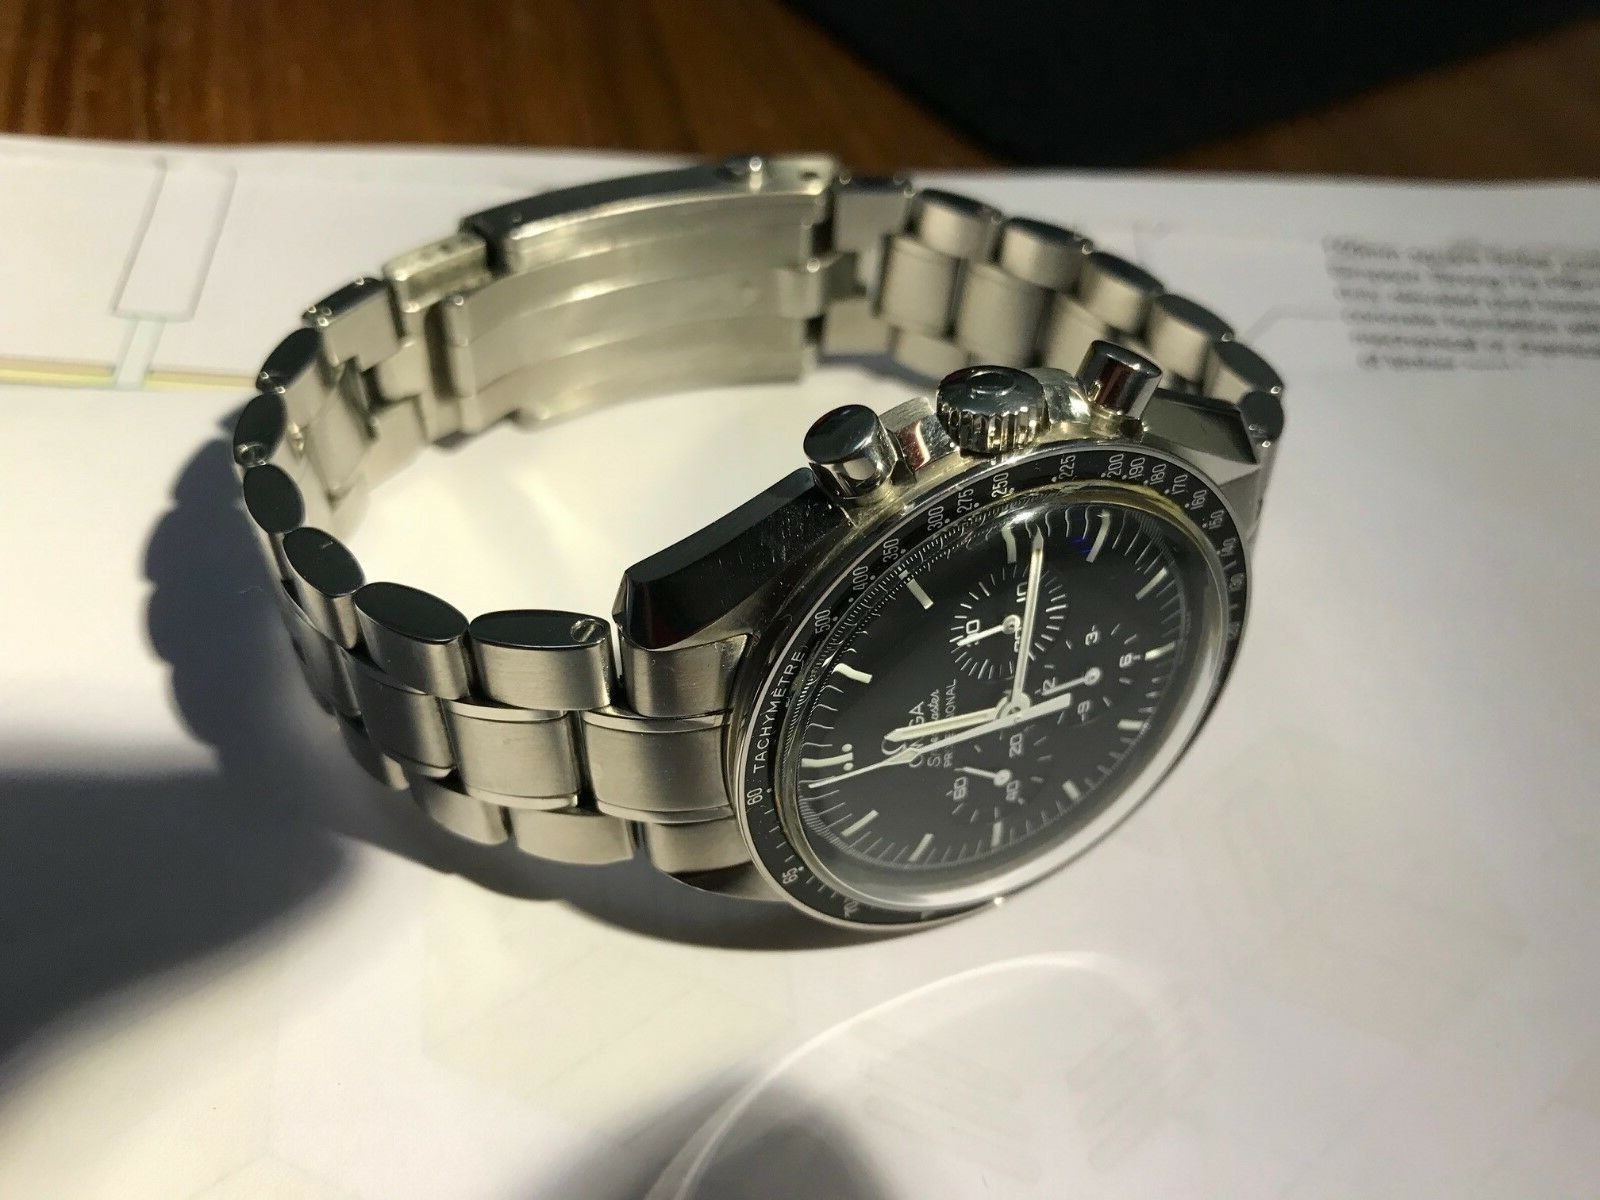 Omega Speedmaster Professional Moonwatch ref: 311.30.42.30.01.005 - watch picture 1